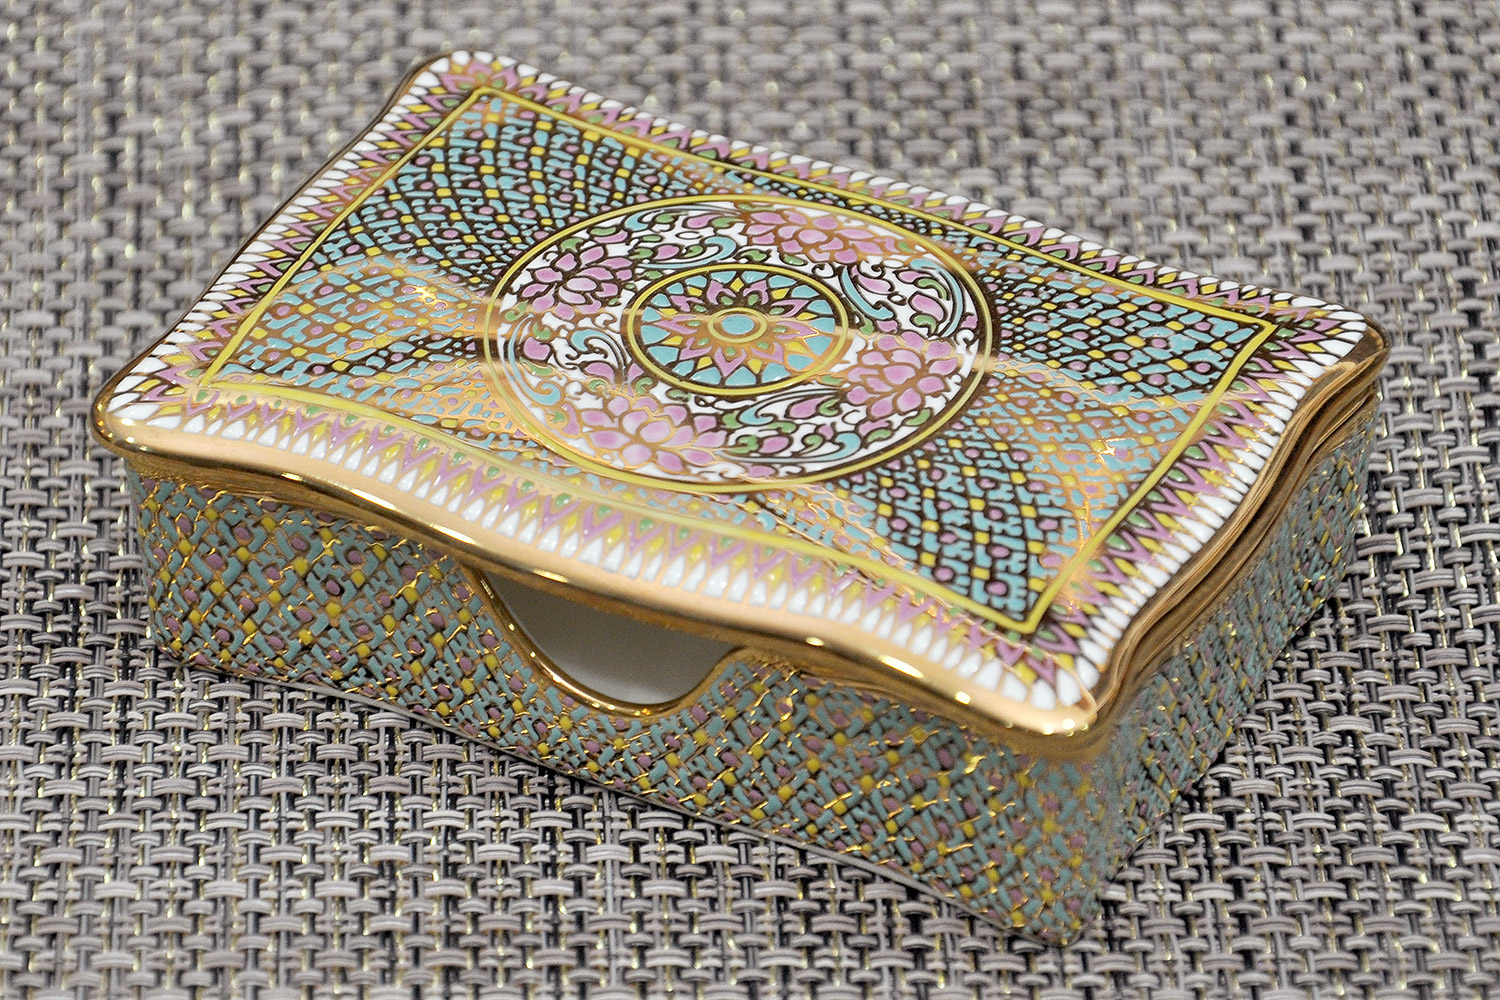 Benjarong bone china jewelry box souvenir